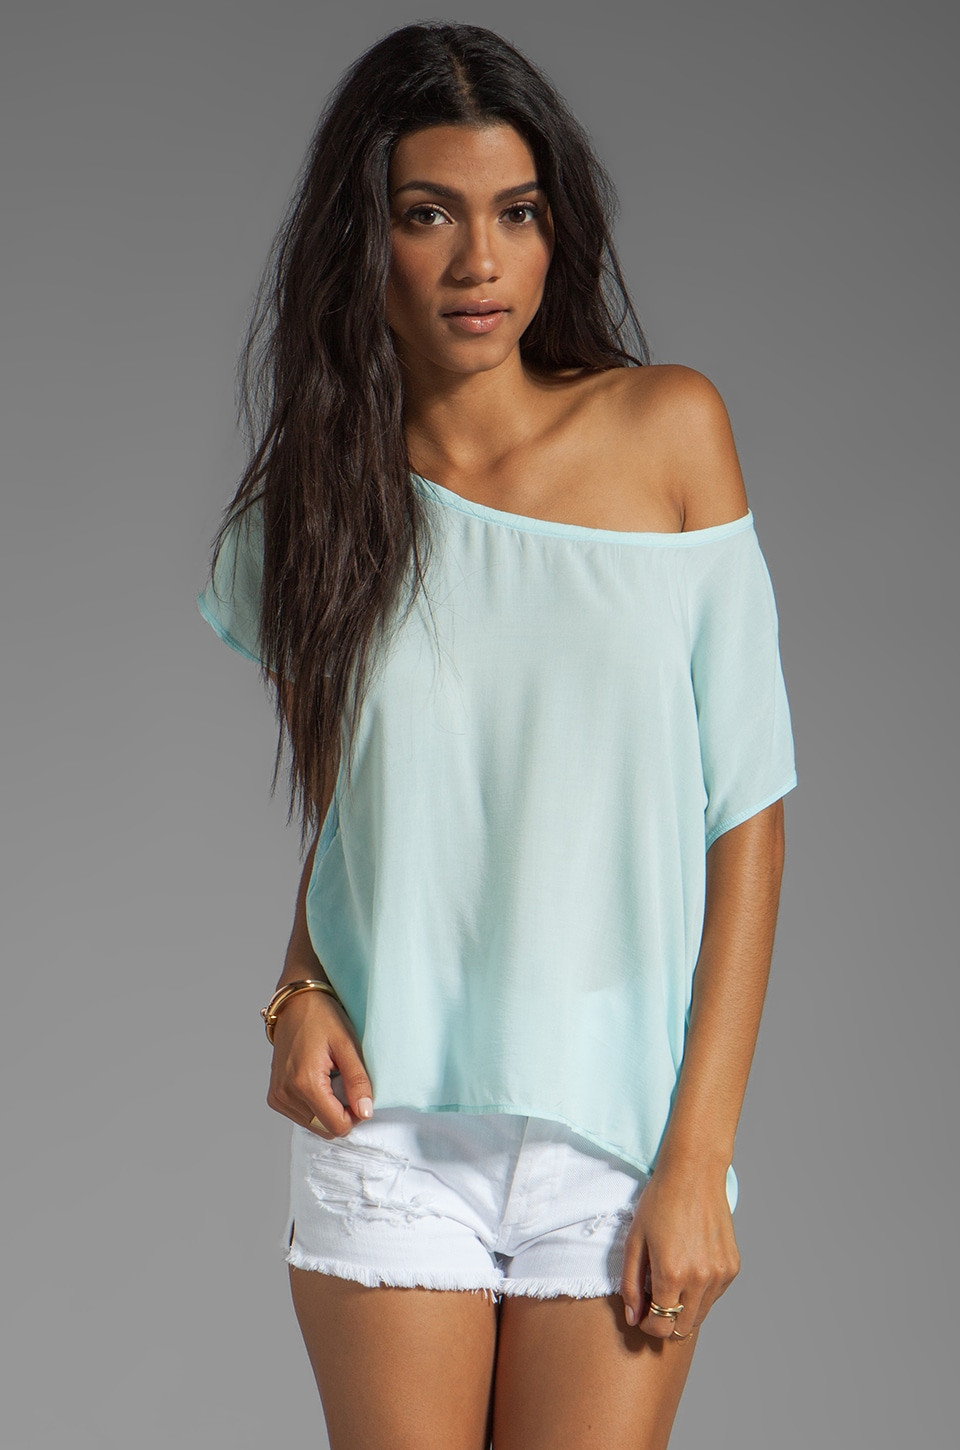 Splendid Shirting Top in Mint